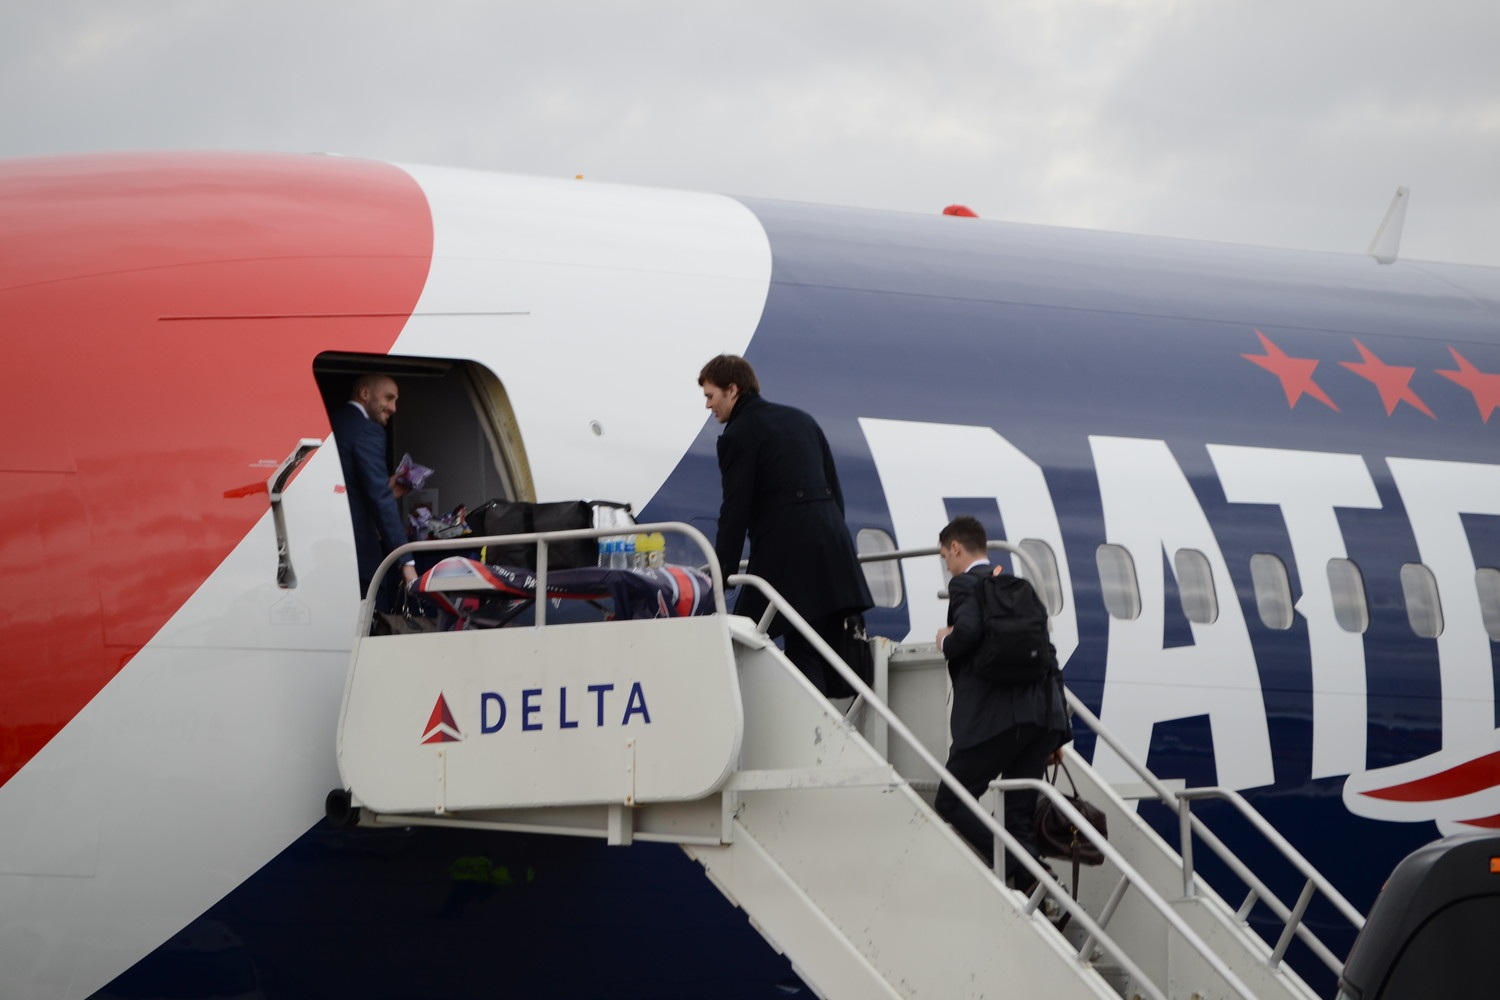 Brian Hoyer, Tom Brady and Chris Hogan make their way onto the Patriots plane at T.F. Green Airport en route to Minneapolis for Super Bowl 52 on Monday, Jan. 29.